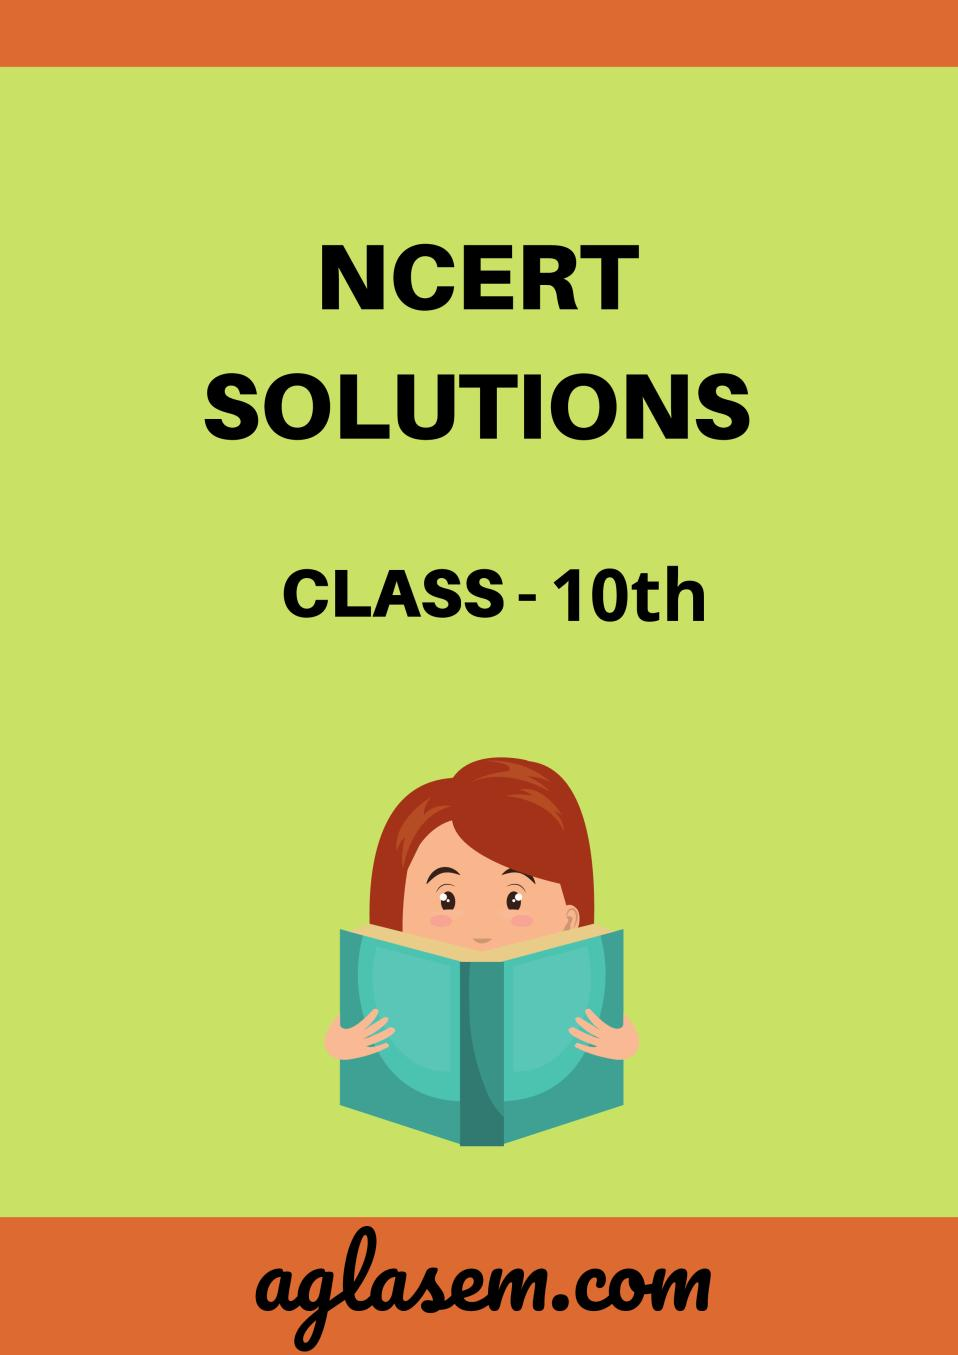 NCERT Solutions for Class 10 Social Science History Chapter 3 The Making of a Global World